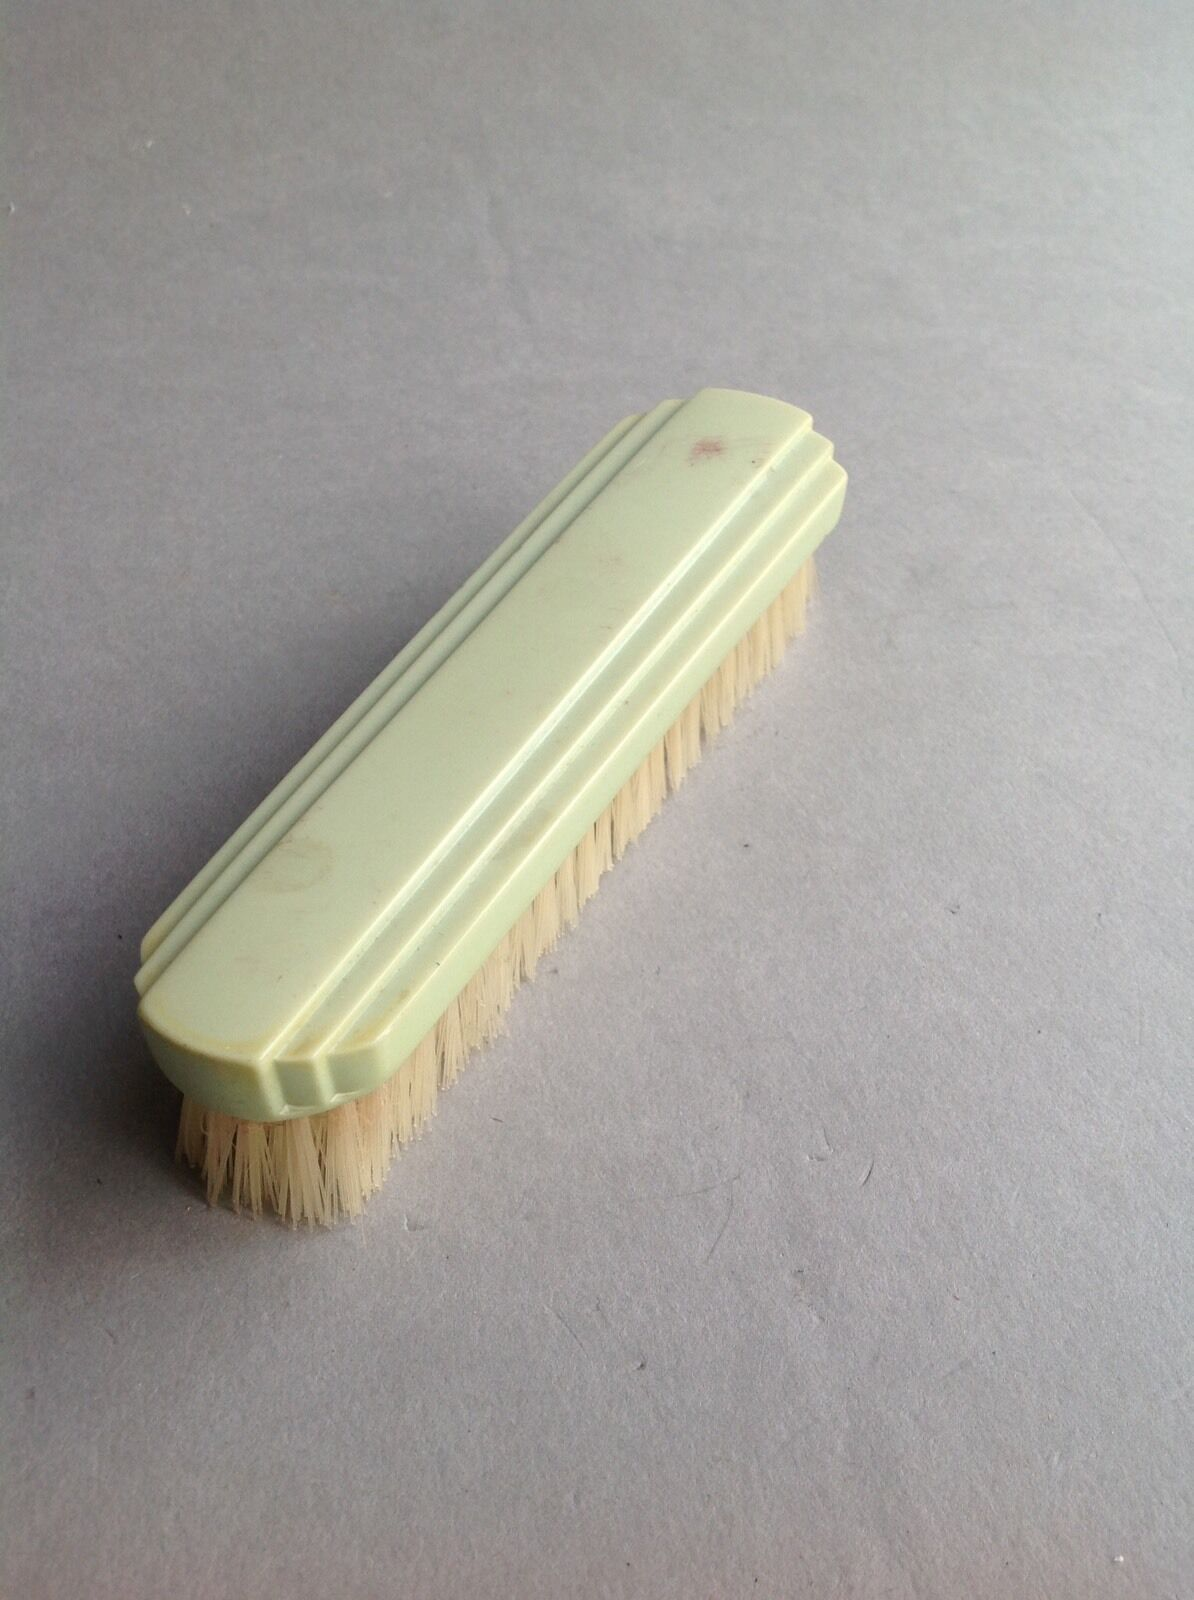 vintage clothes brush 163 6 00 picclick uk